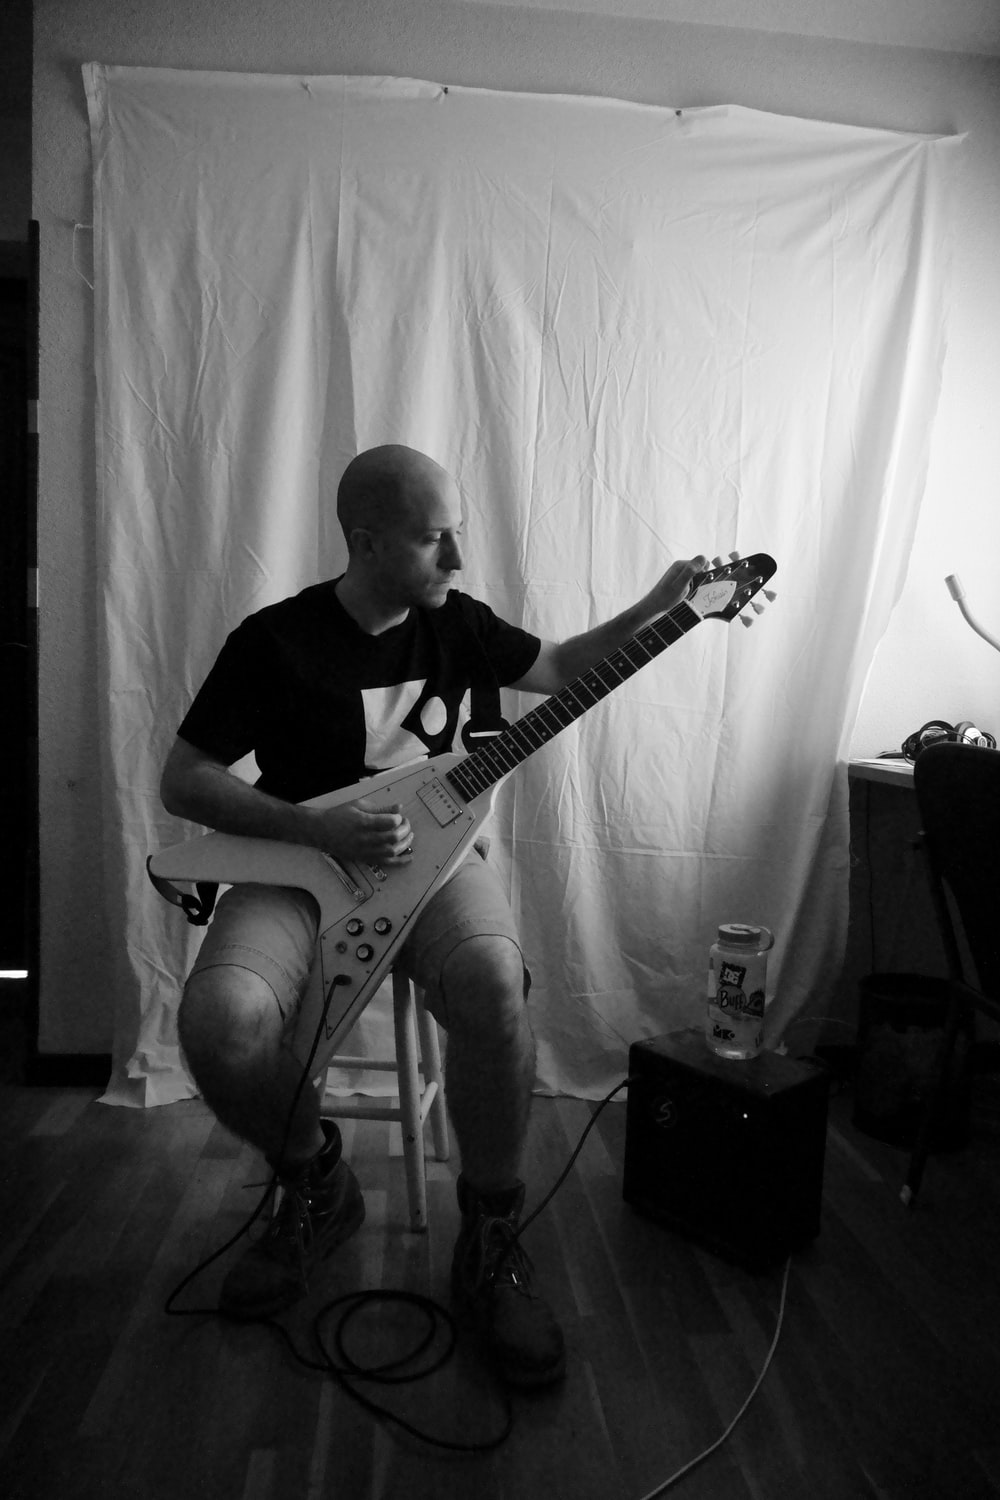 grayscale photography of man sitting while playing electric guitar